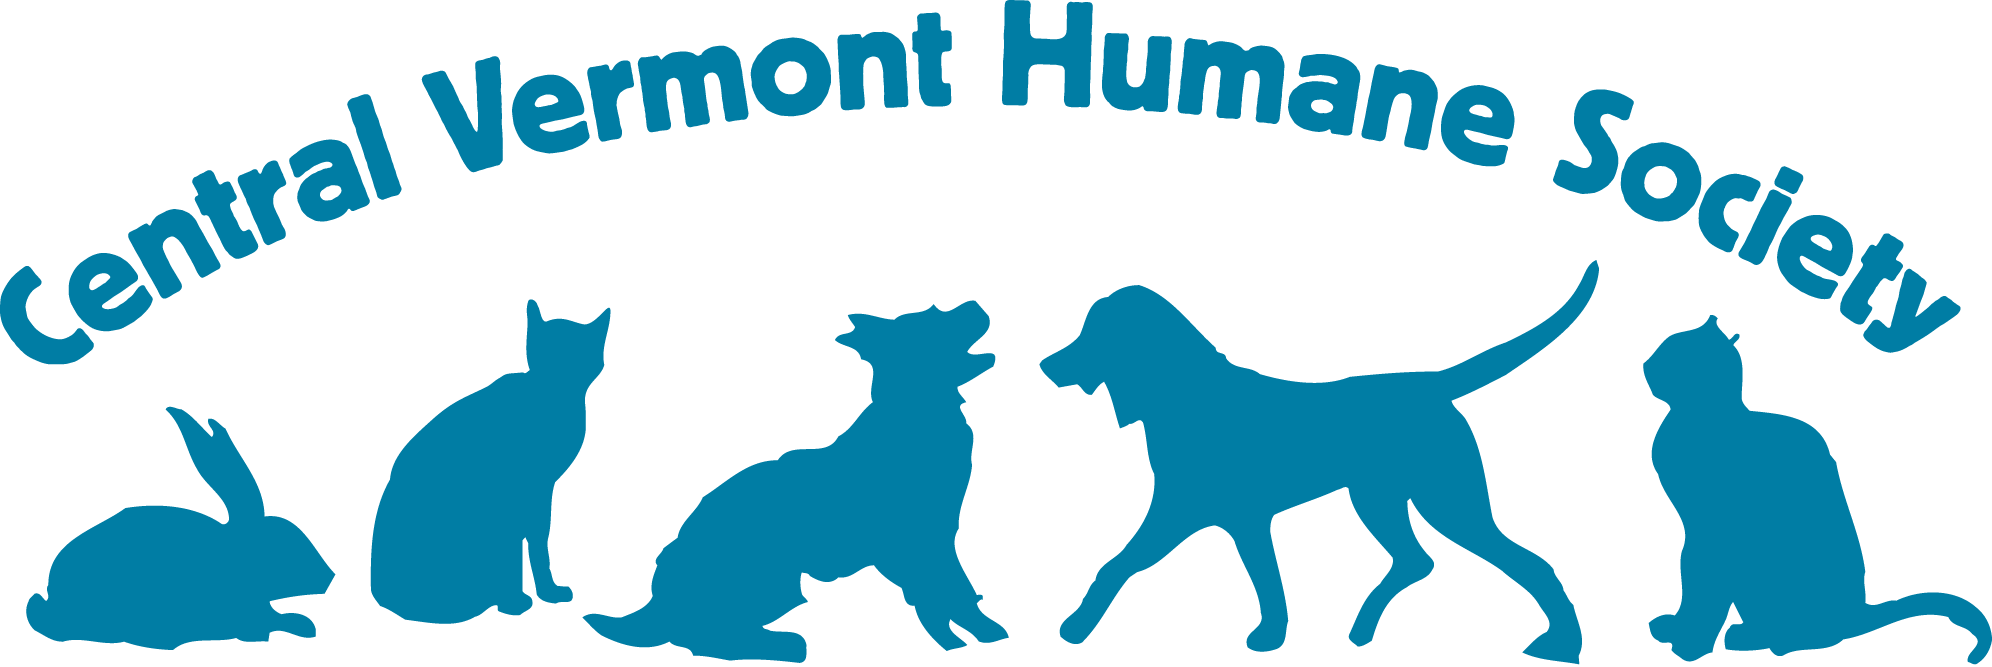 CVHS – Central Vermont Humane Society